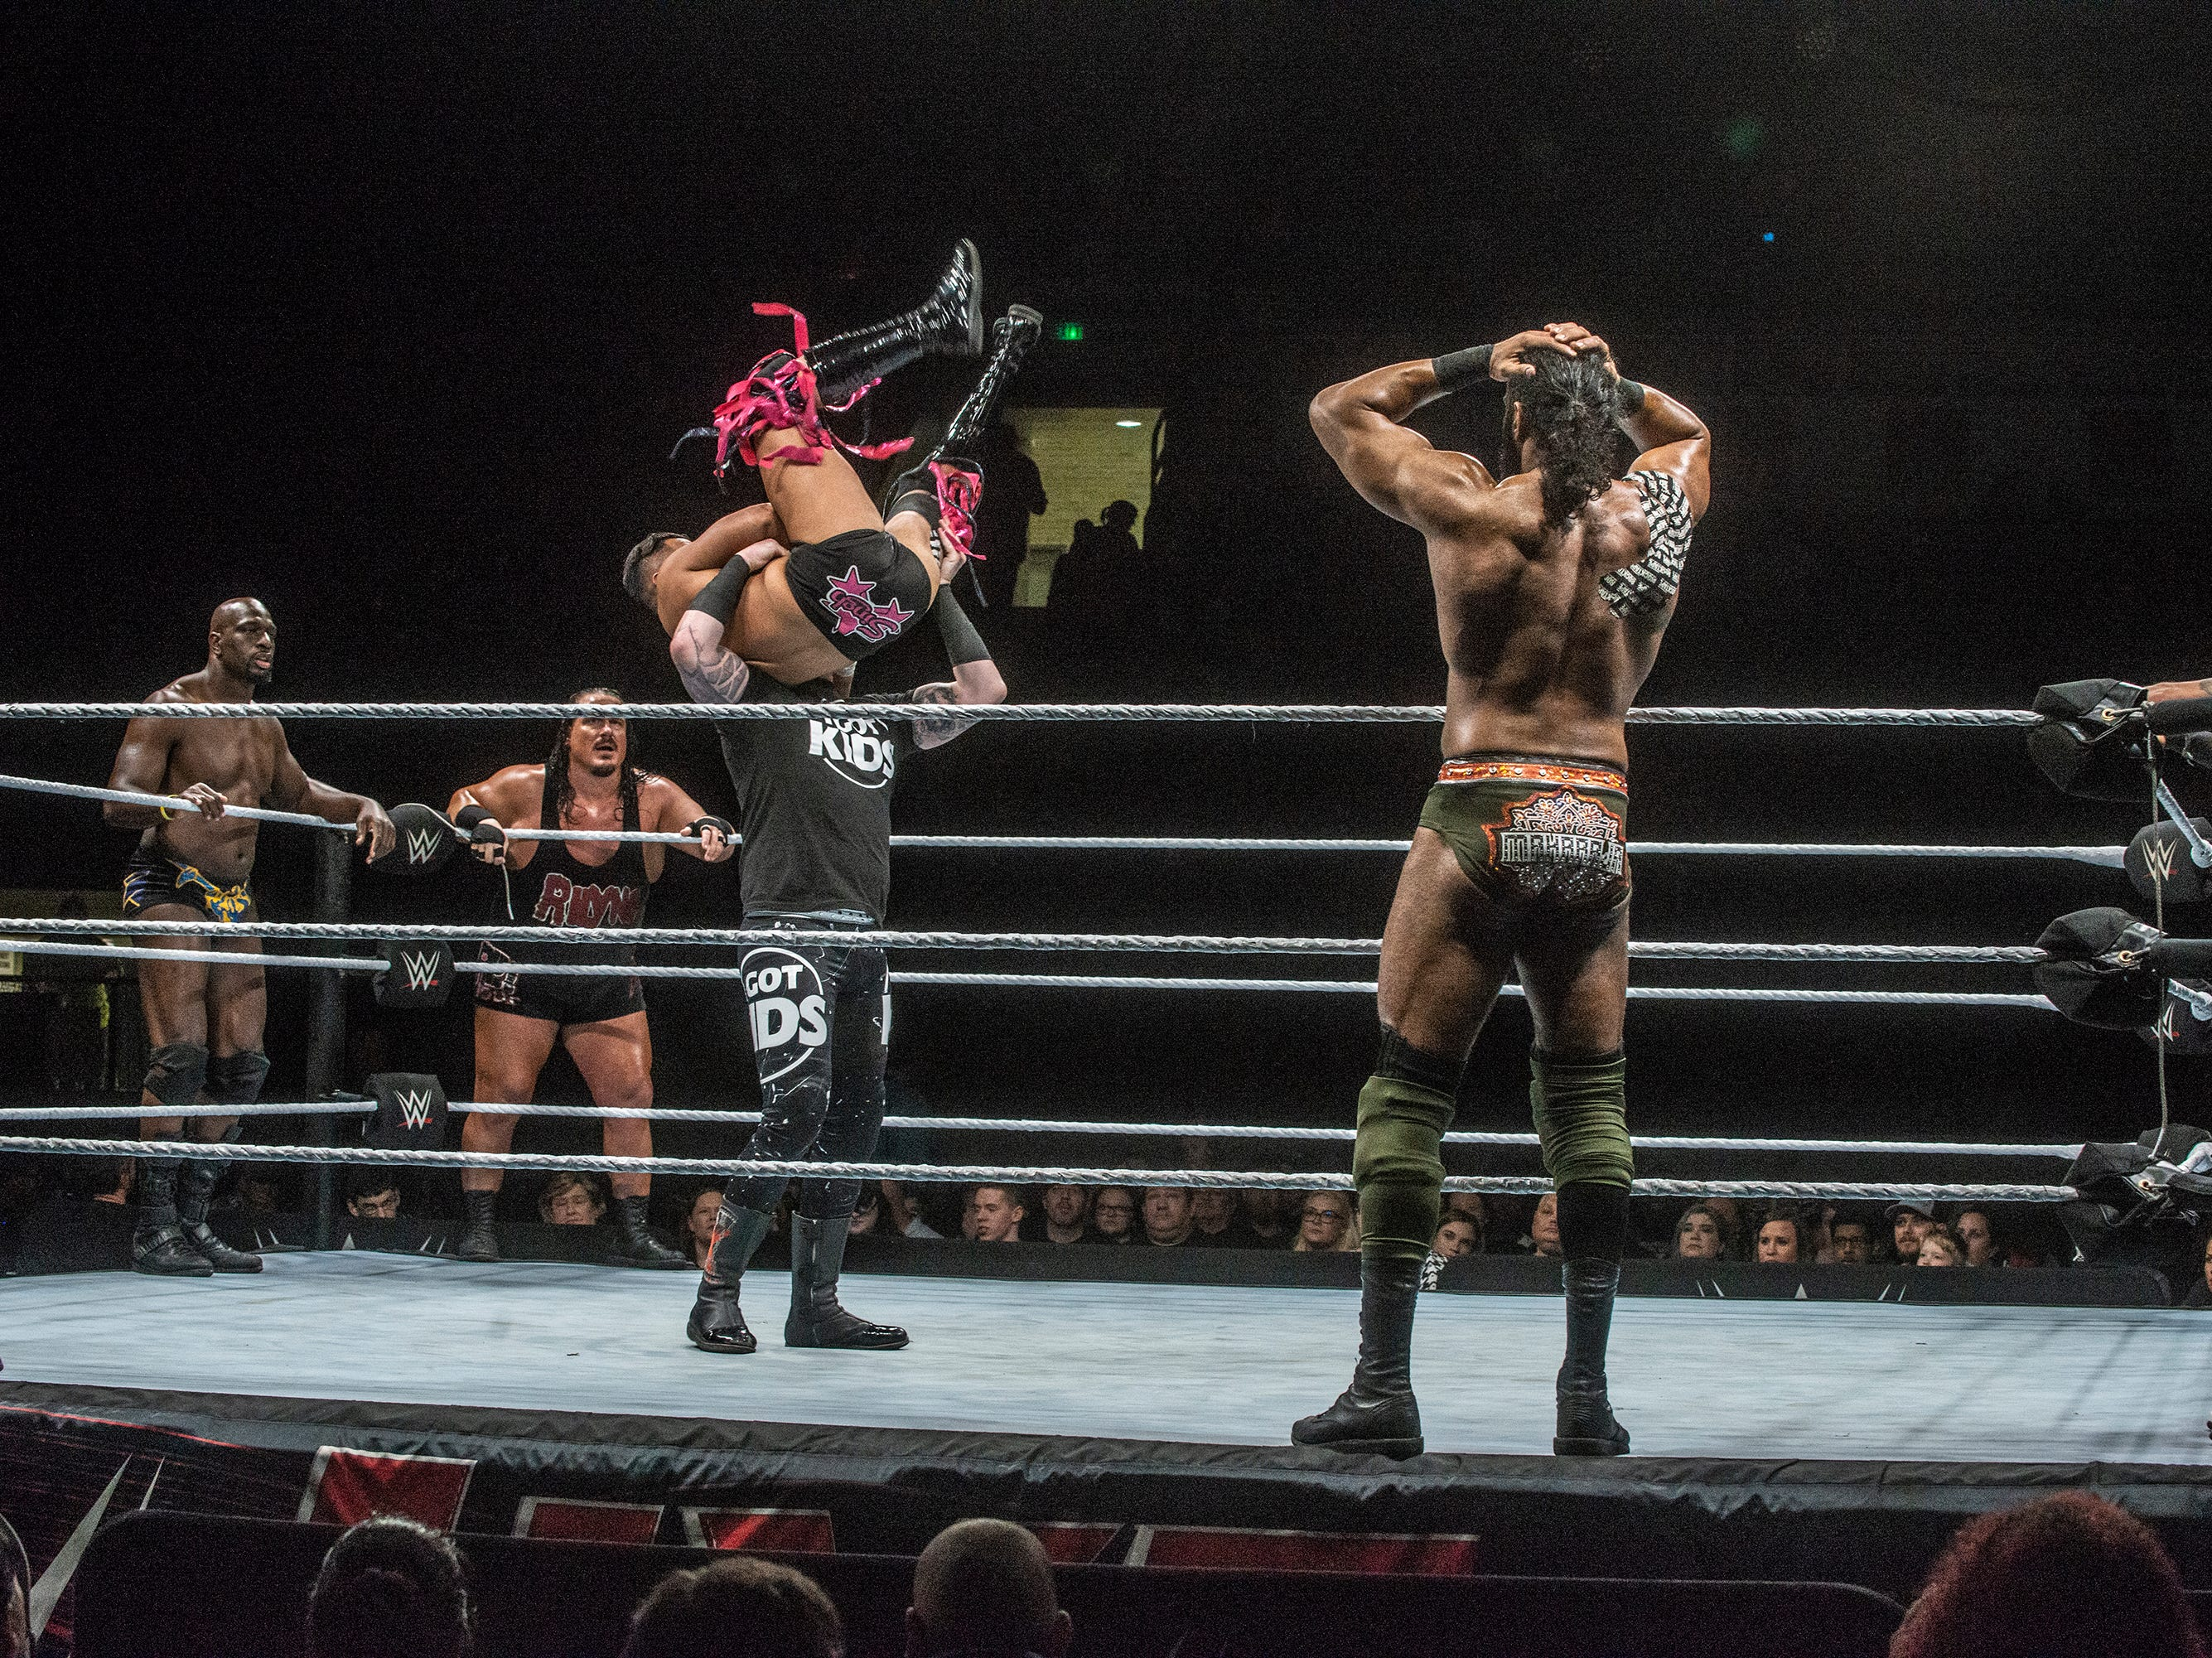 The Singh Brothers and Jinder Mahal in a six man tag team match against Titus OÕNeil, Heath Slater and Rhyno. WWE Live Road to Wrestlemania came to Garrett Coliseum in Montgomery on Sunday, Feb. 24, 2019.